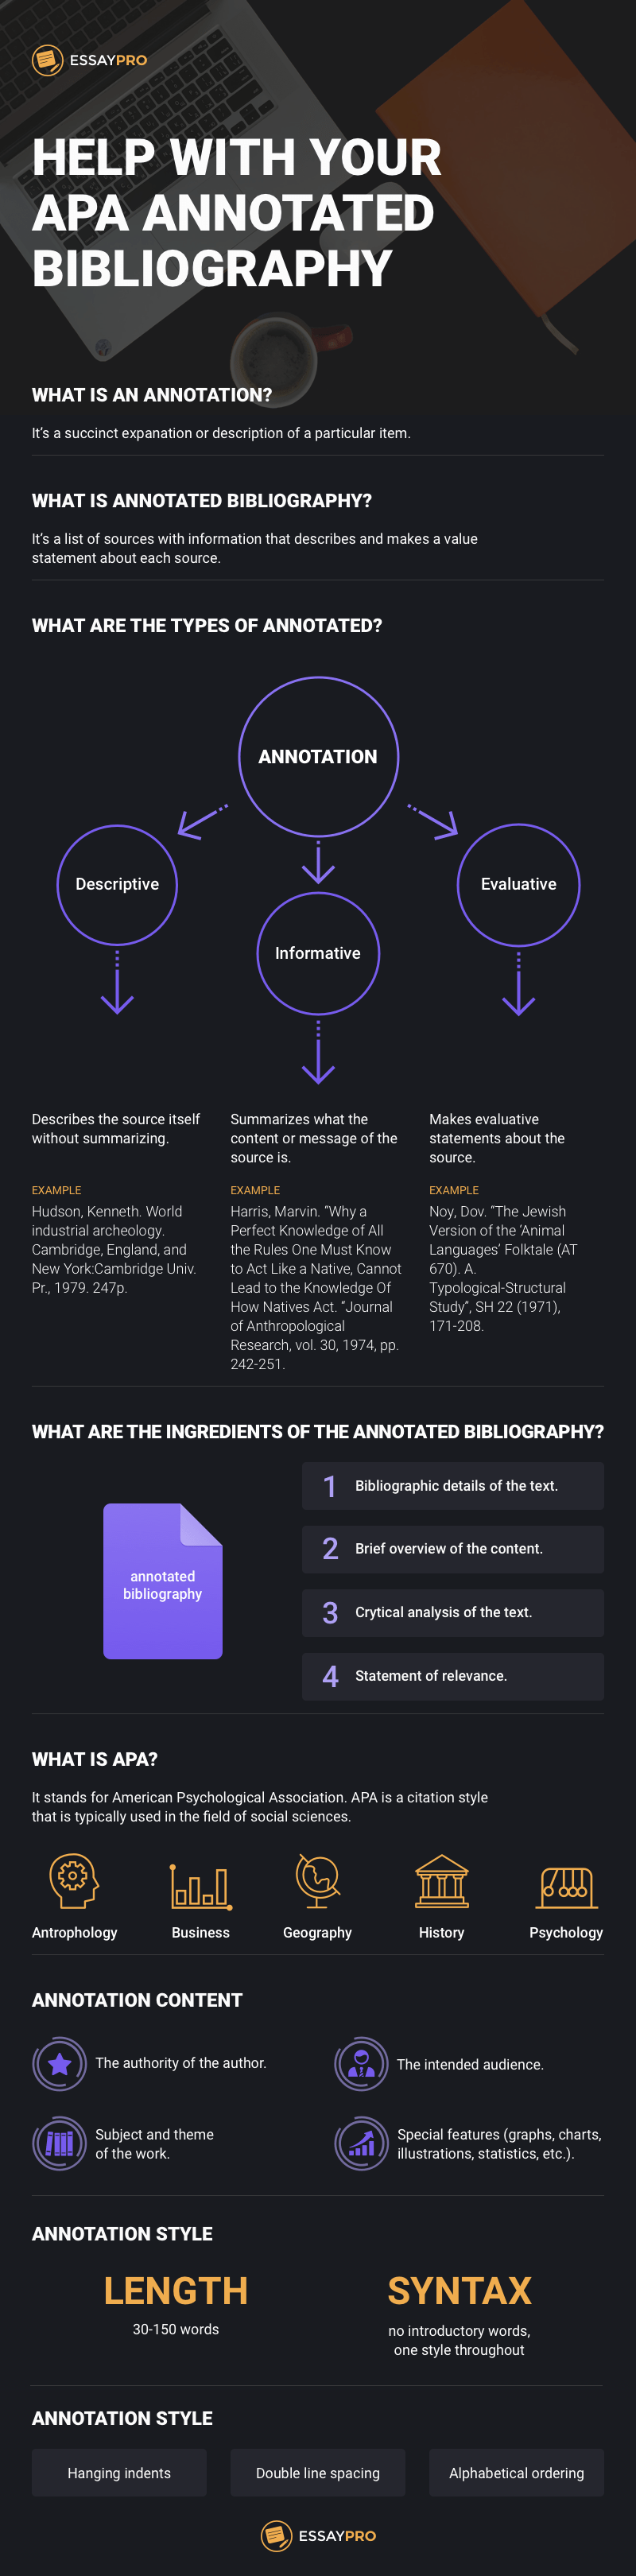 Help with your APA Annotated Bibliography (Infographic)